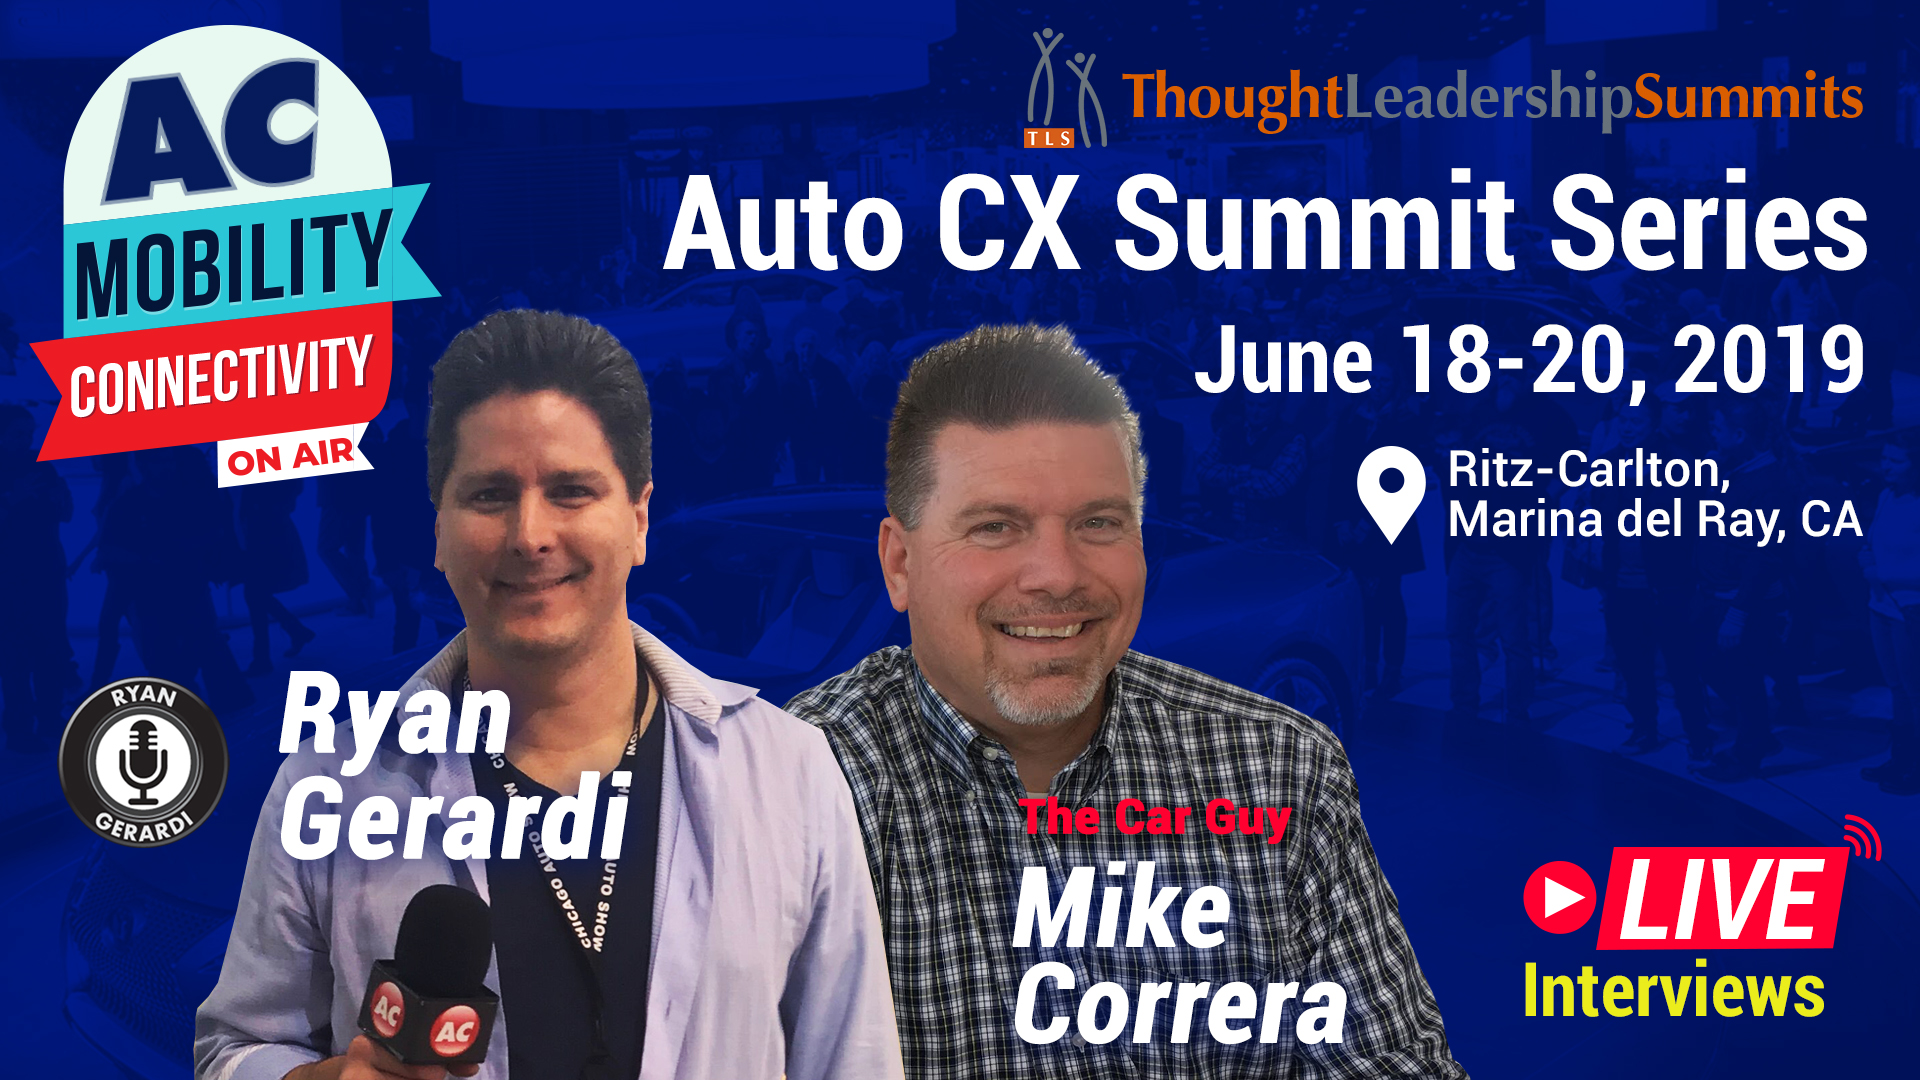 Join Us at the 2019 Automotive CX Summit in Marina del Rey, California – June 18 & 19